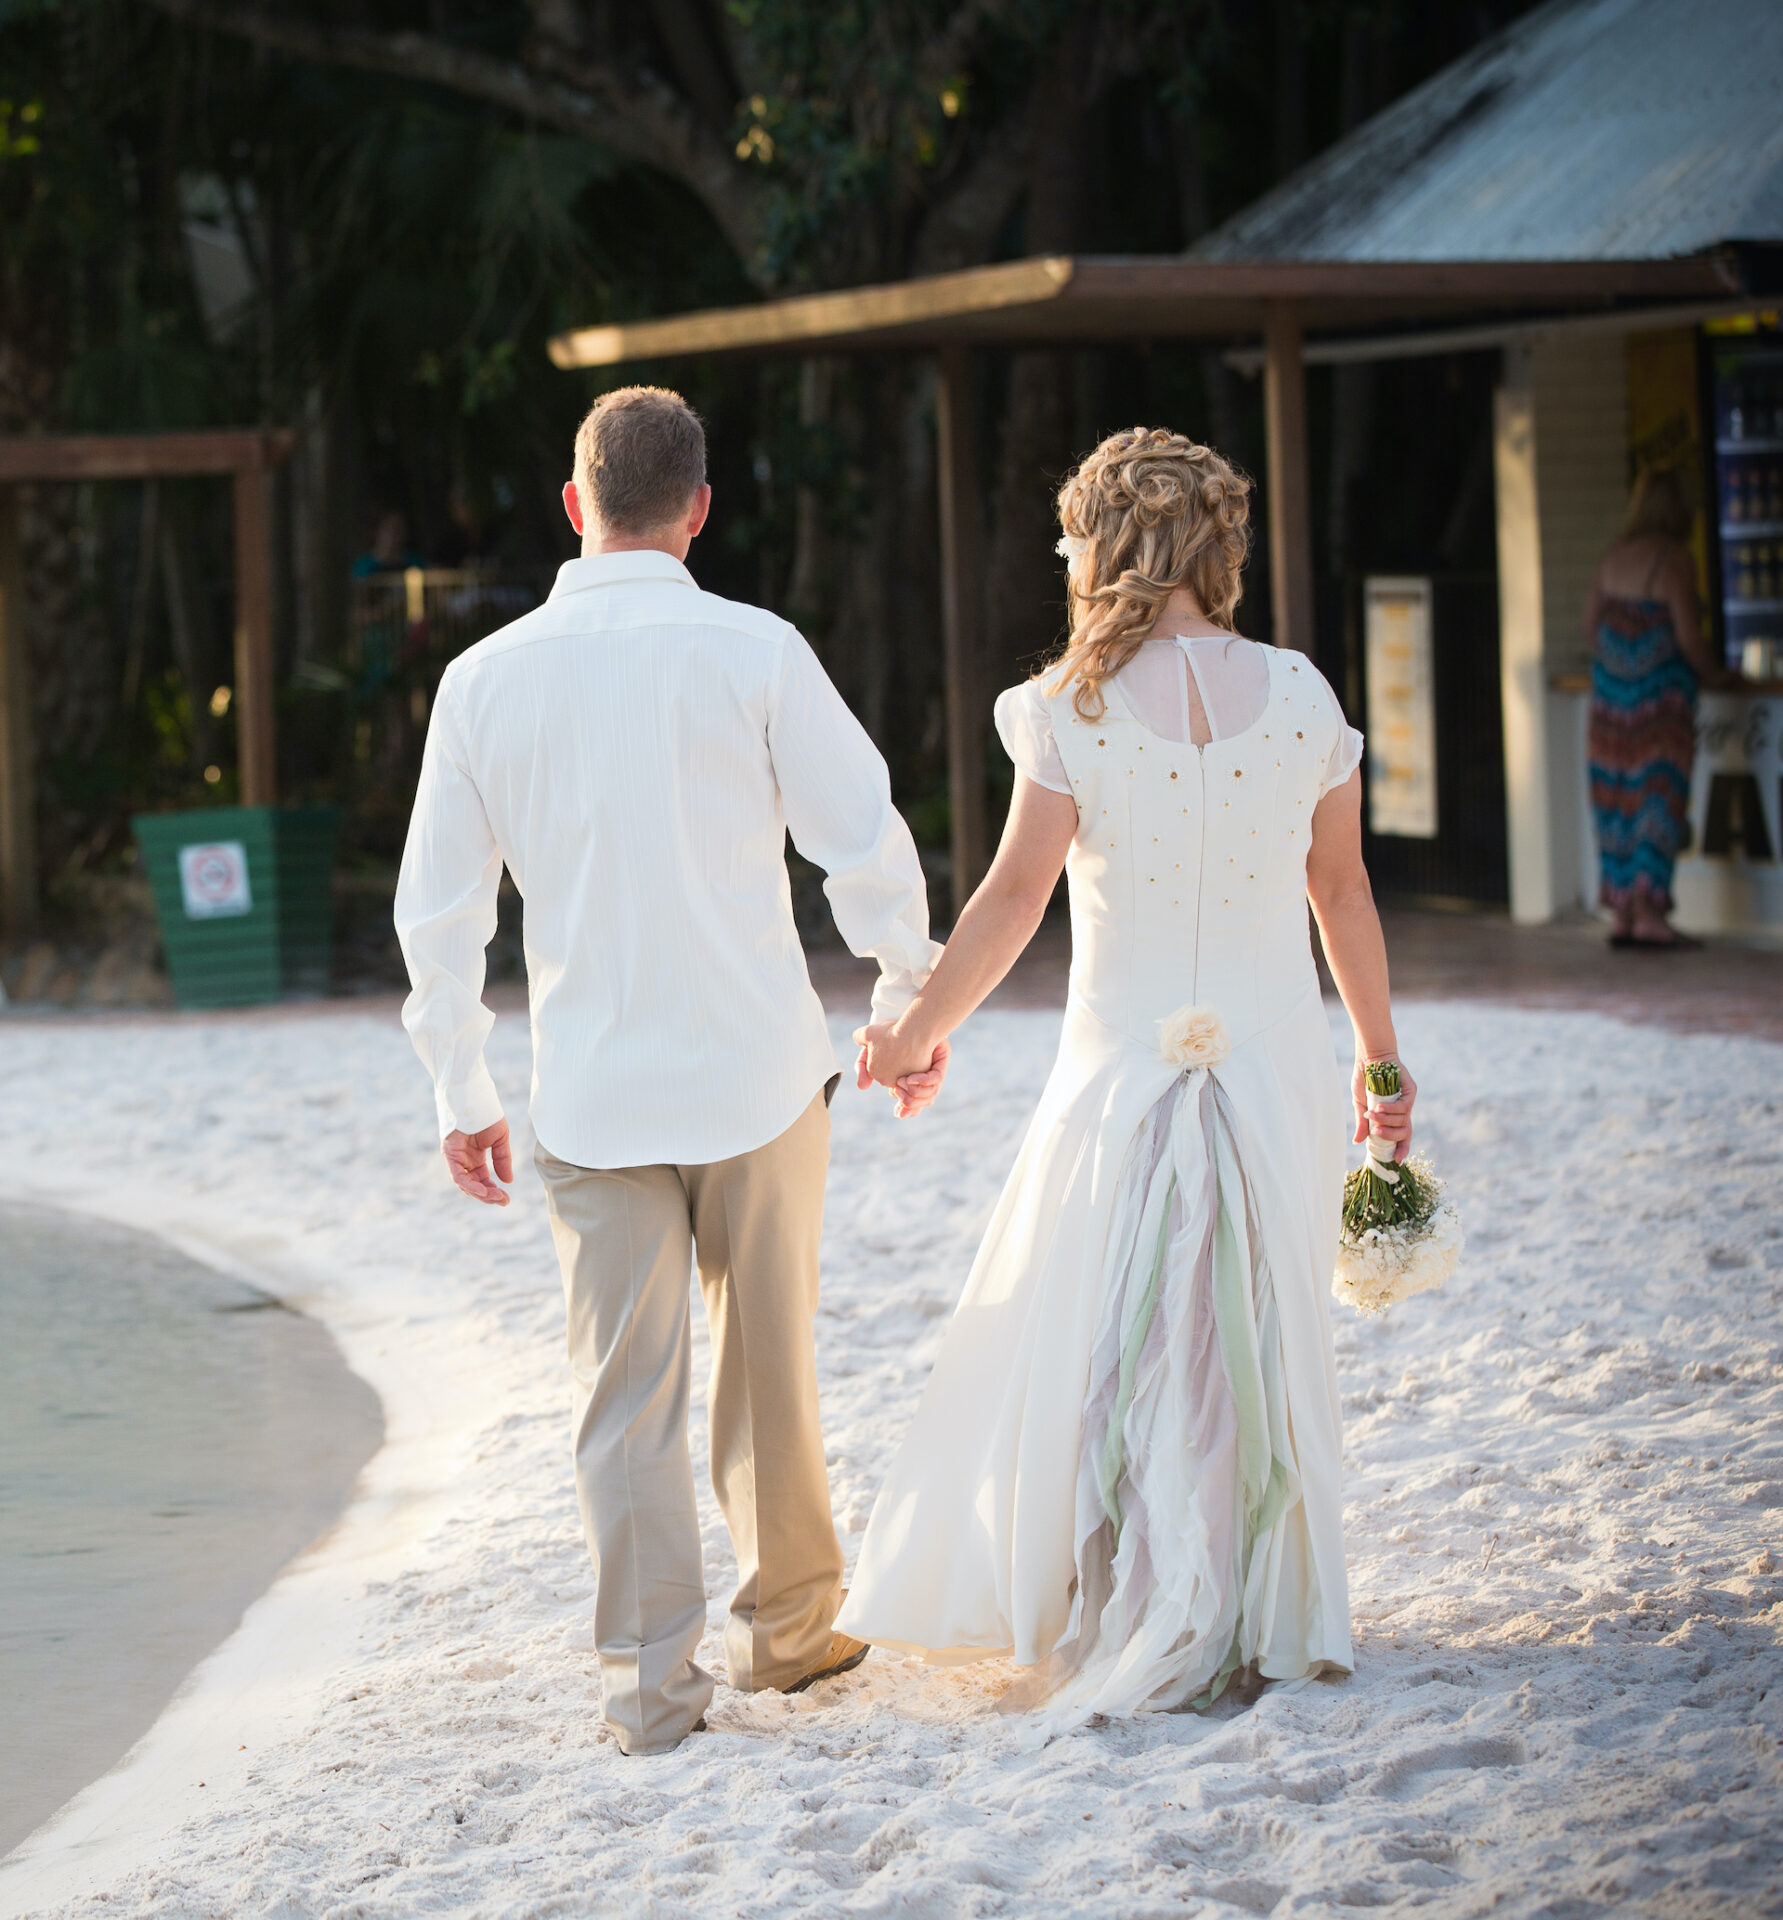 The bride and groom holding hands viewed from behind